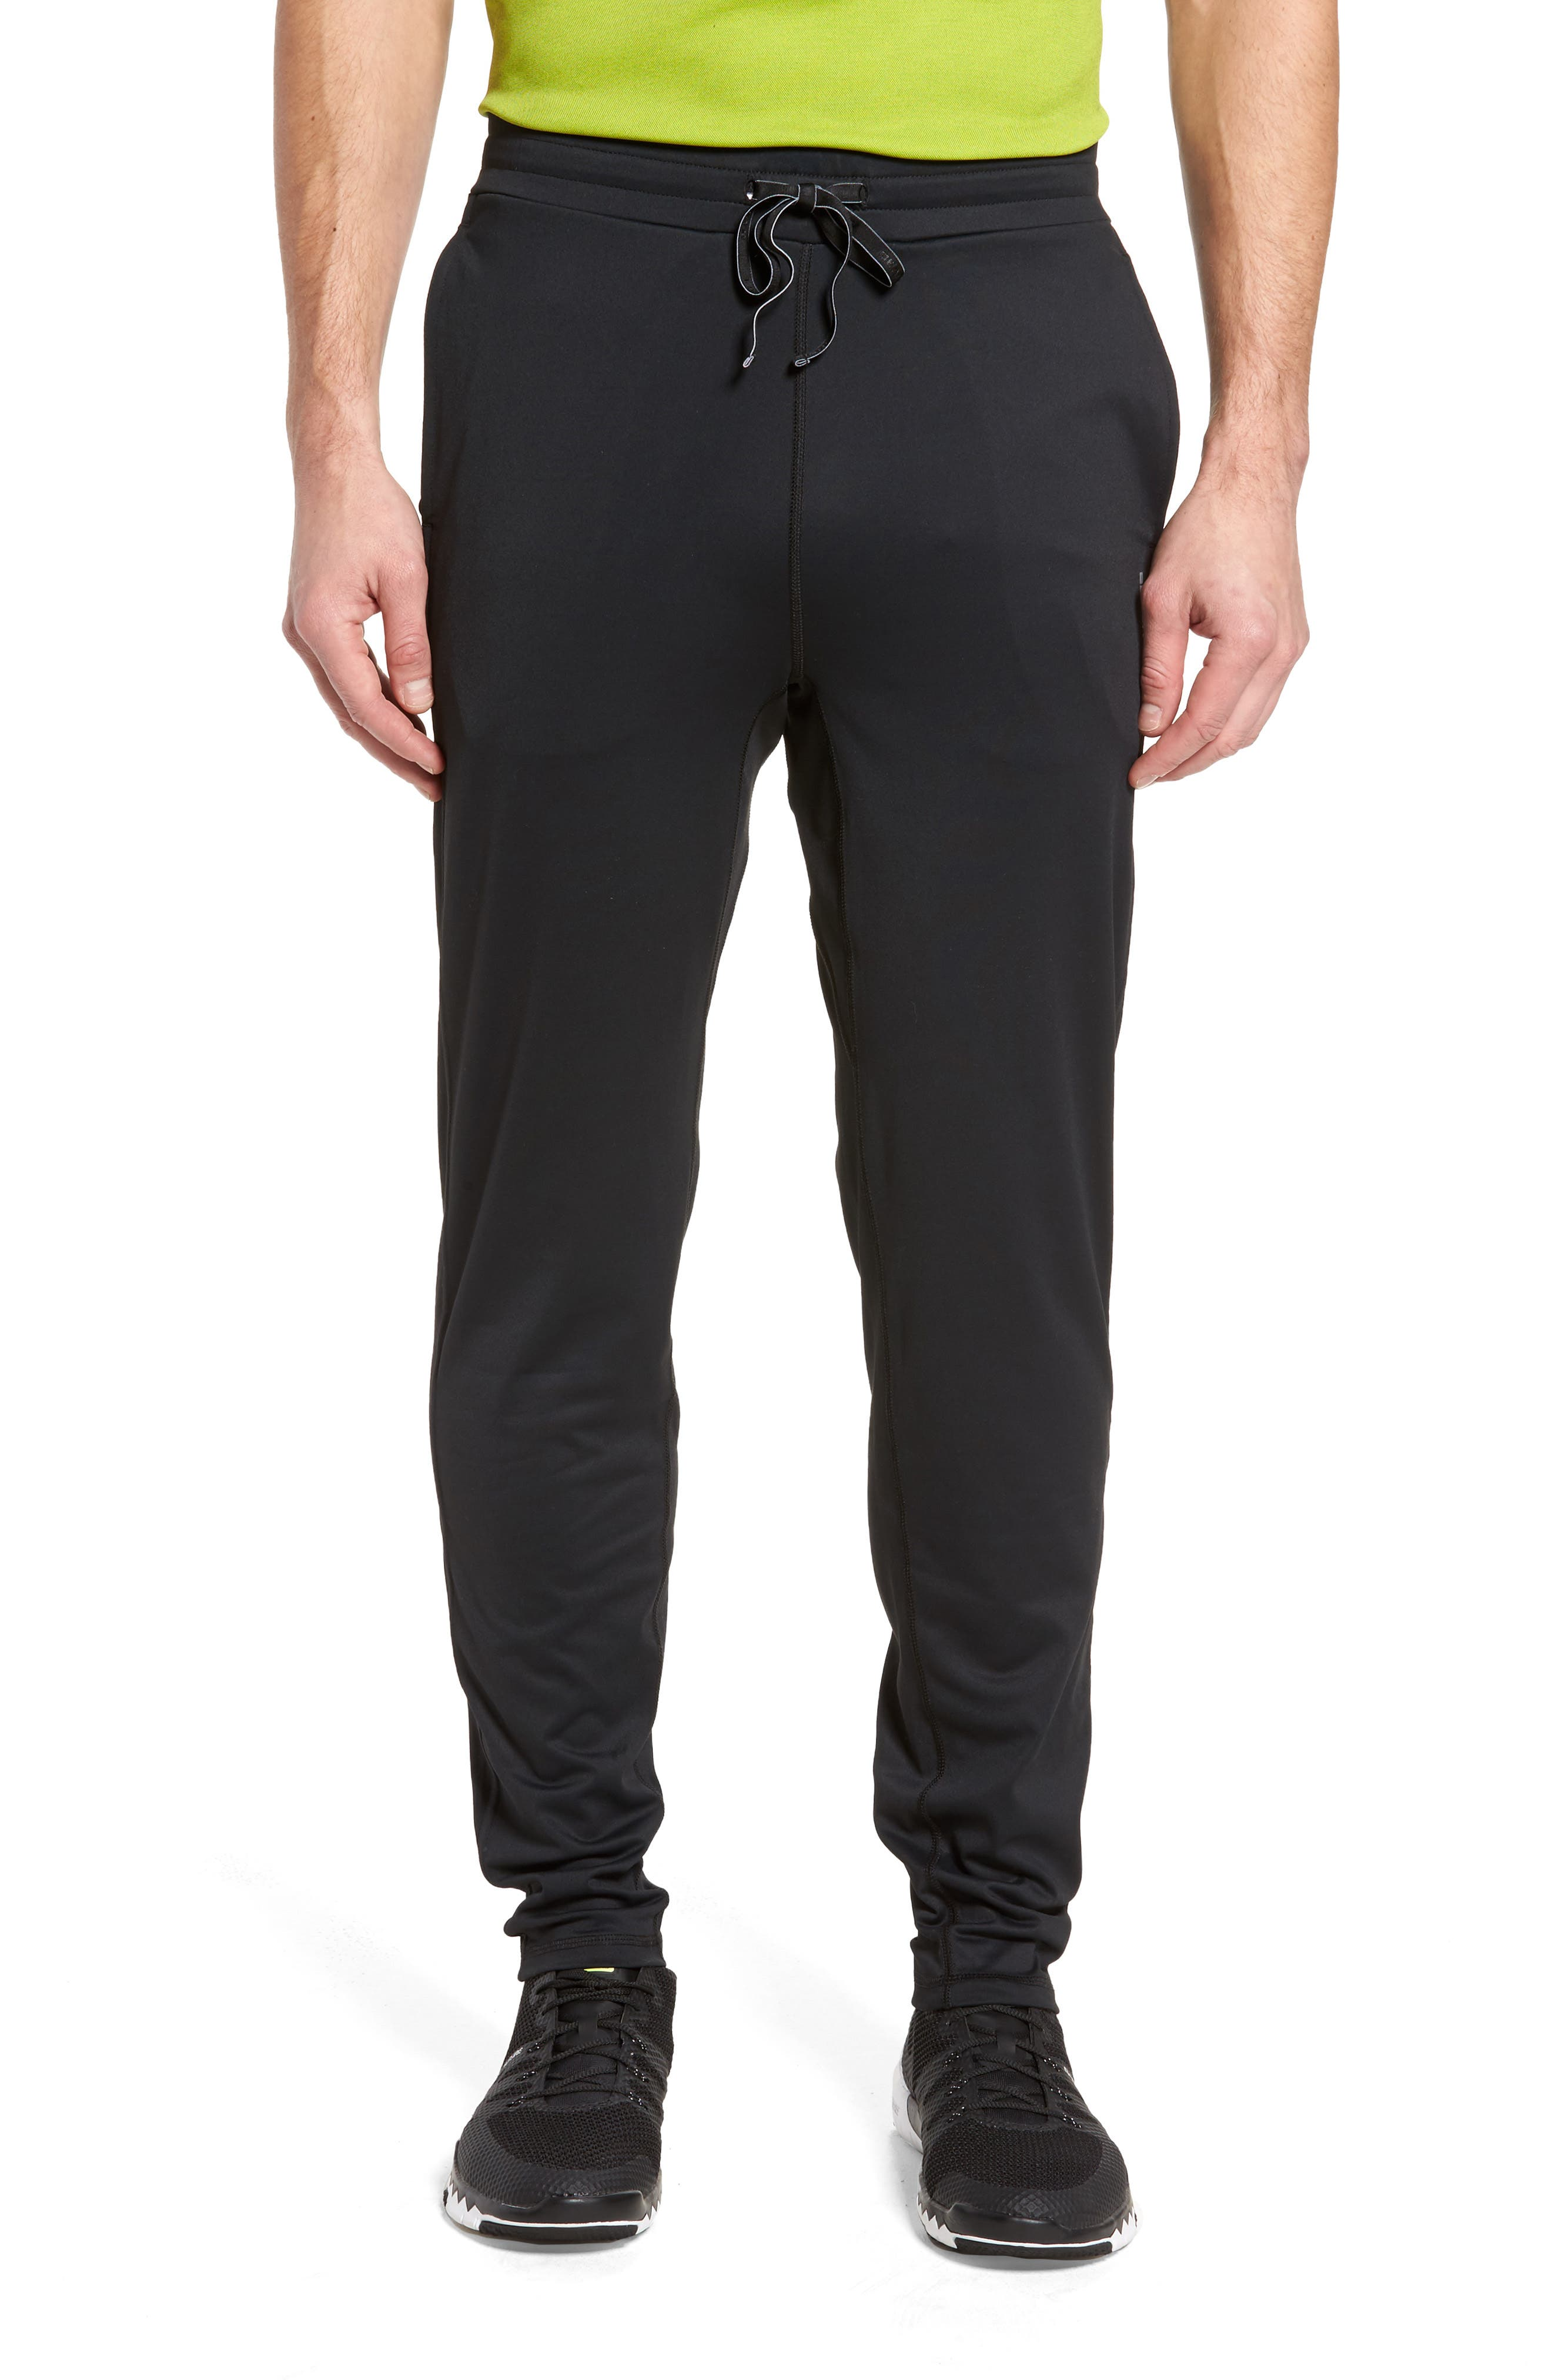 Go-To Slim Athletic Pants,                         Main,                         color, 001